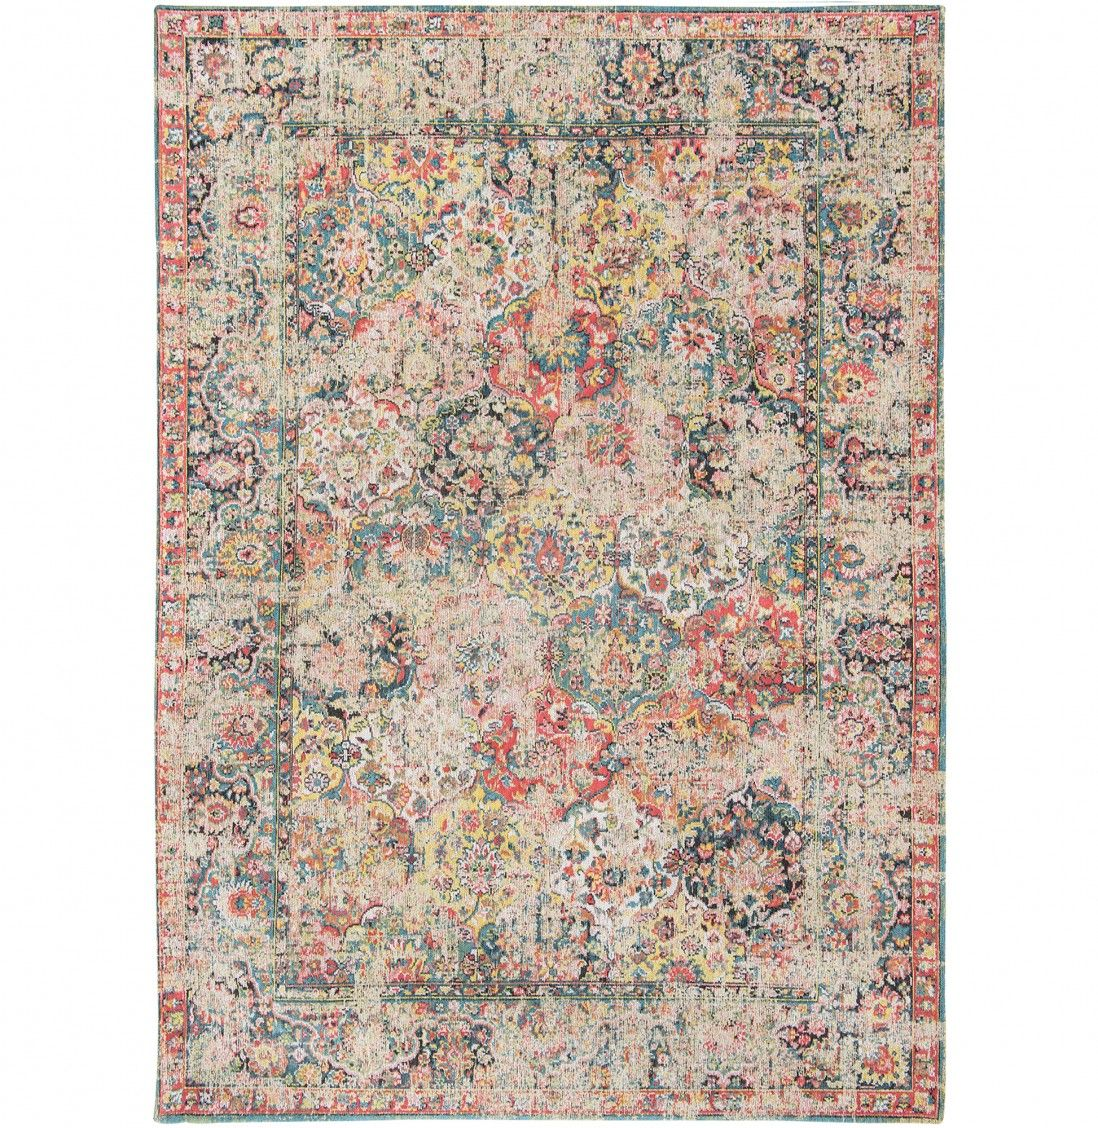 HERITAGE CHENILLE 8712 AREA RUG